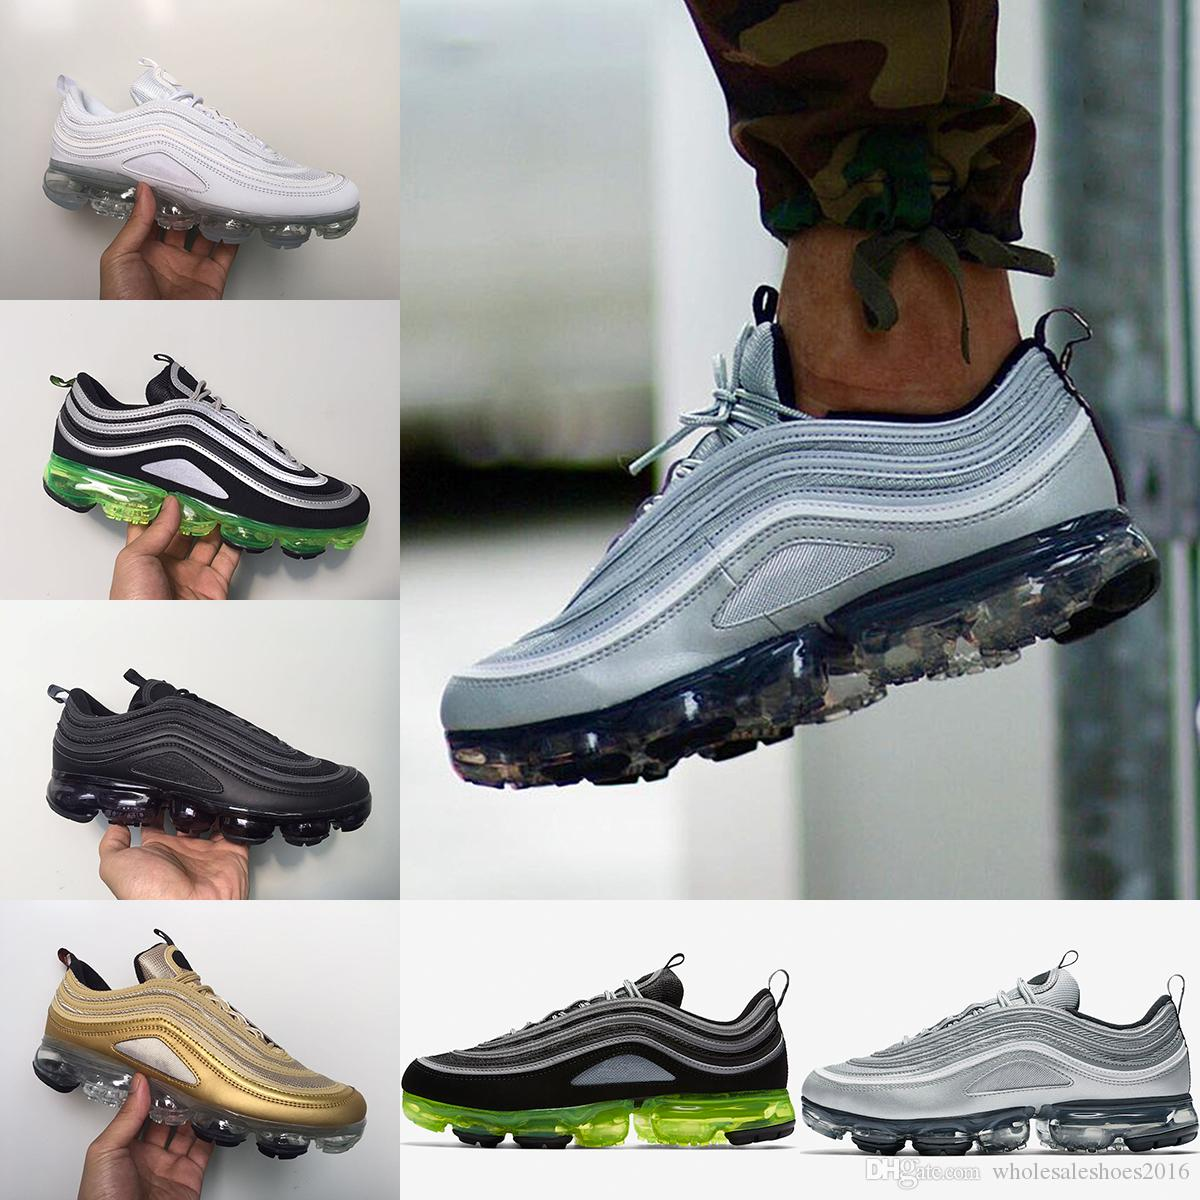 ebay cheap price 2018 Vapormax 97 Men Running Shoes Japan Silver Gold Bullet Triple White Black For Women Men Sports Casual Sneakers US 5.5-11 cheap 2014 unisex cheap collections cheap largest supplier get authentic cheap price qNSGD